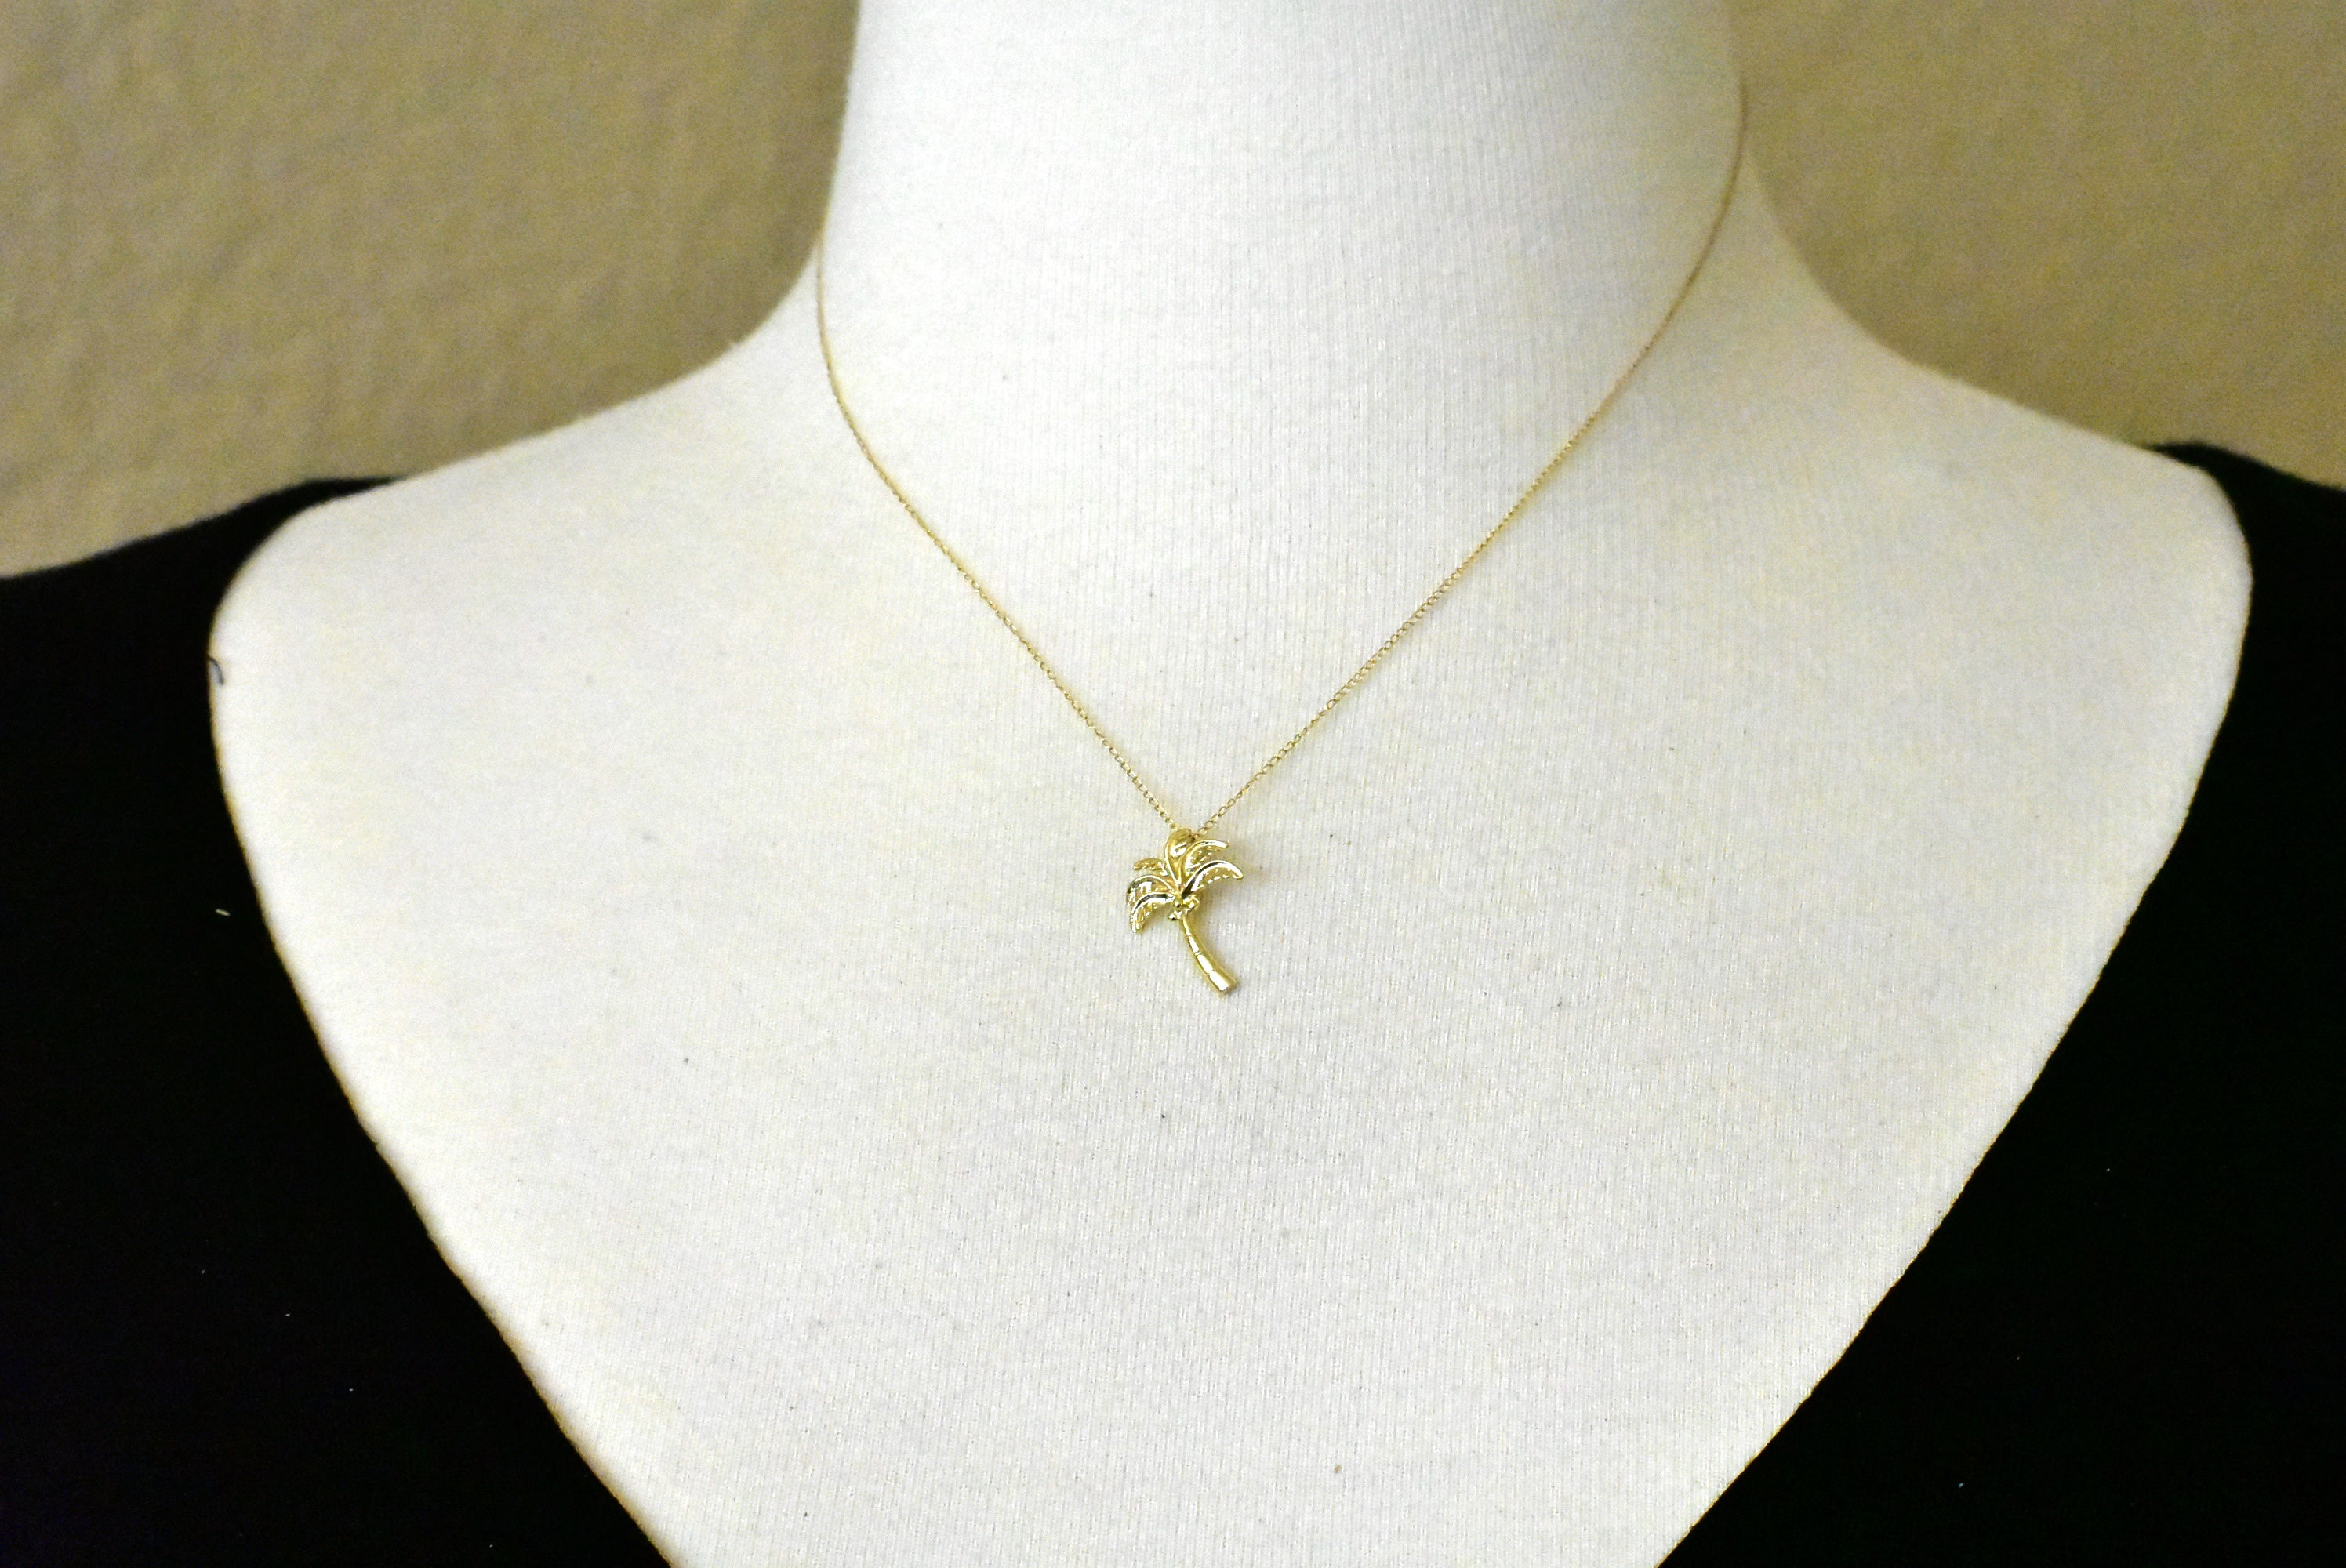 14k Yellow Gold Coconut Tree Chain Slide Pendant Charm